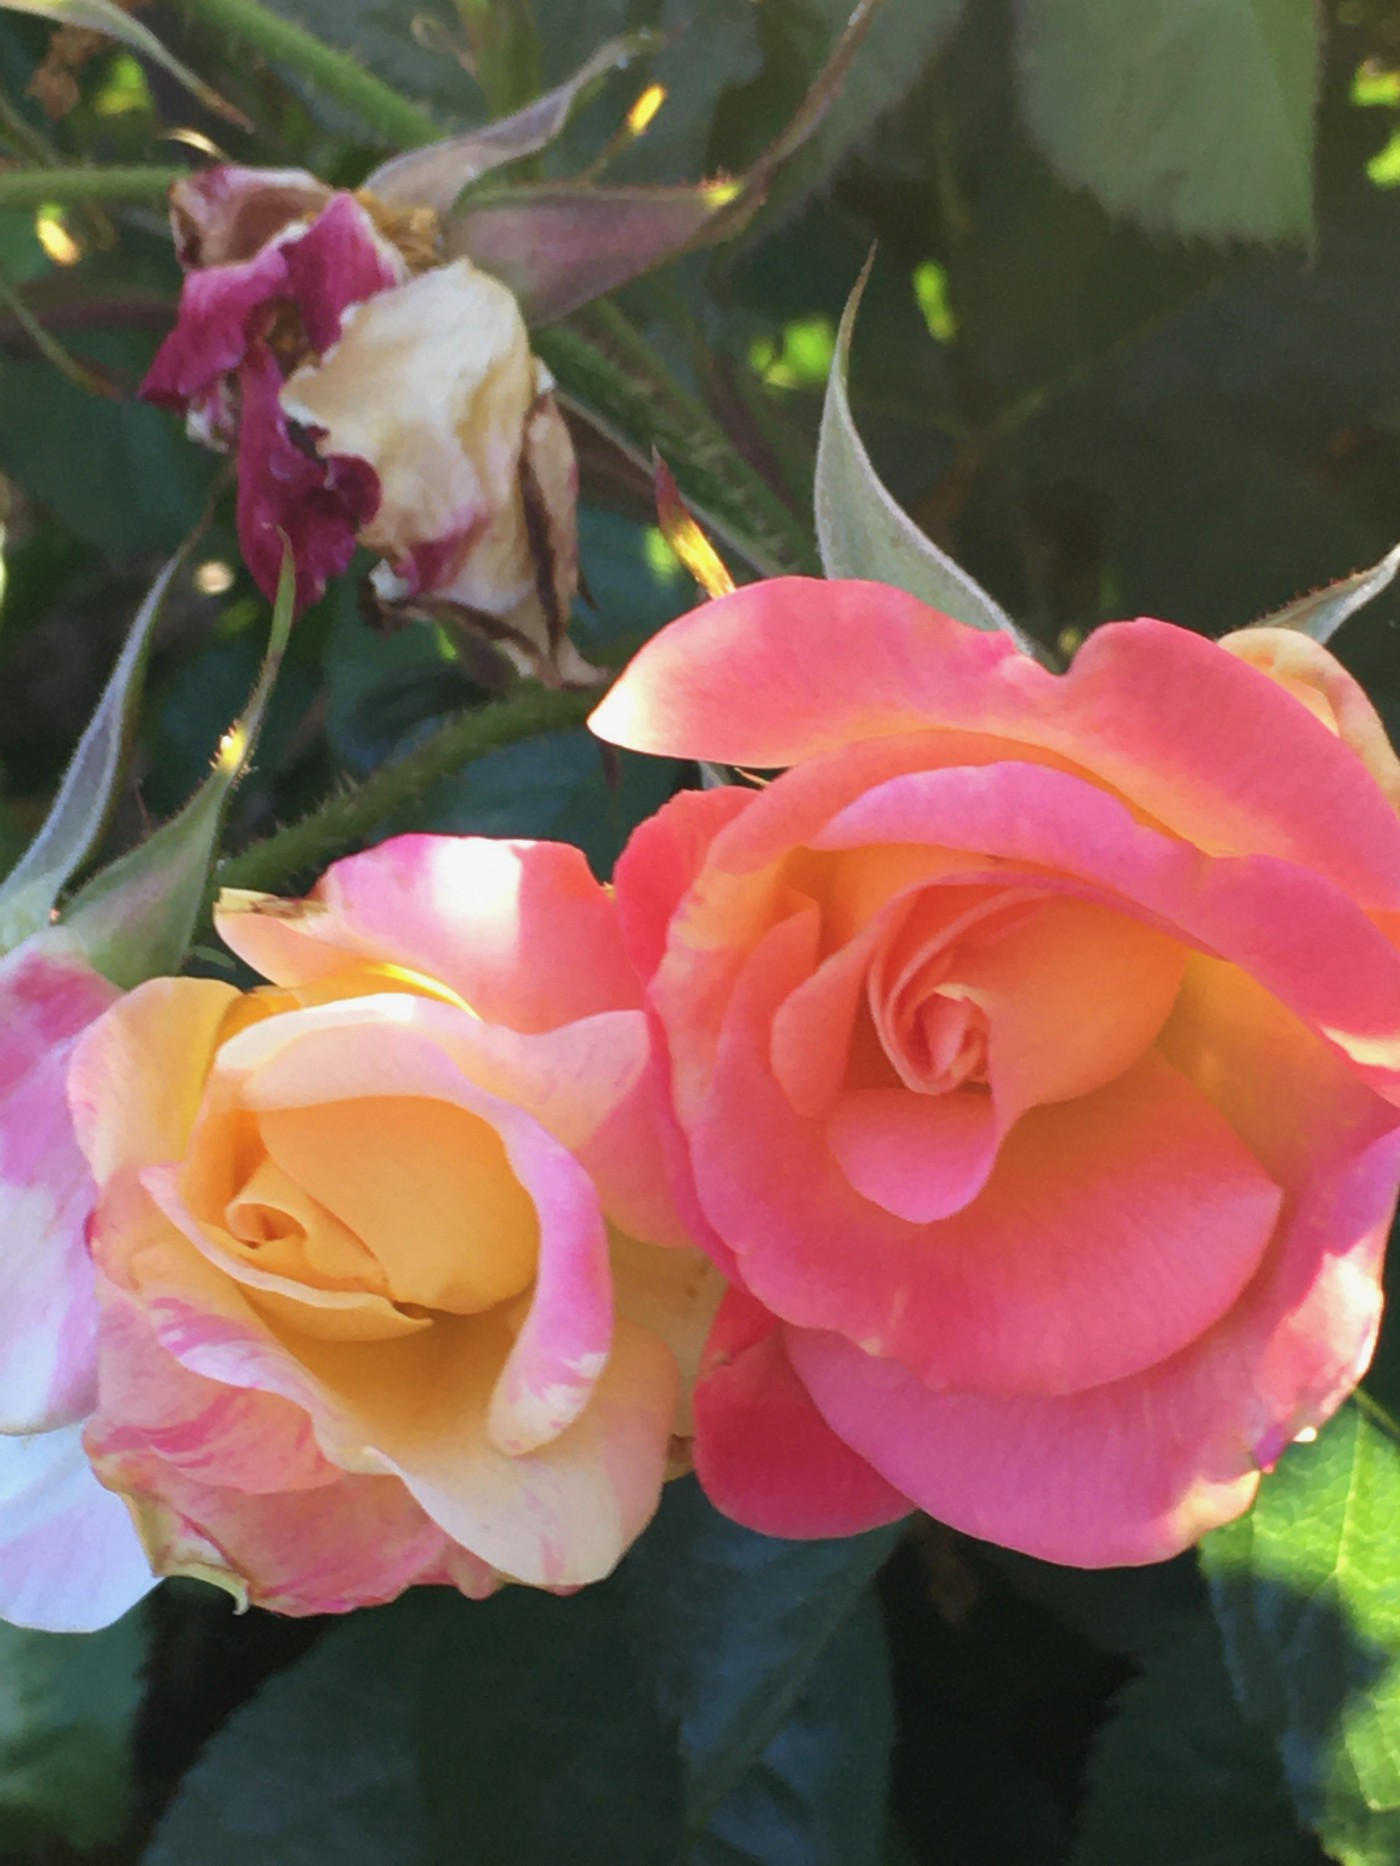 Pink with yellow tinges next to yellow rose.